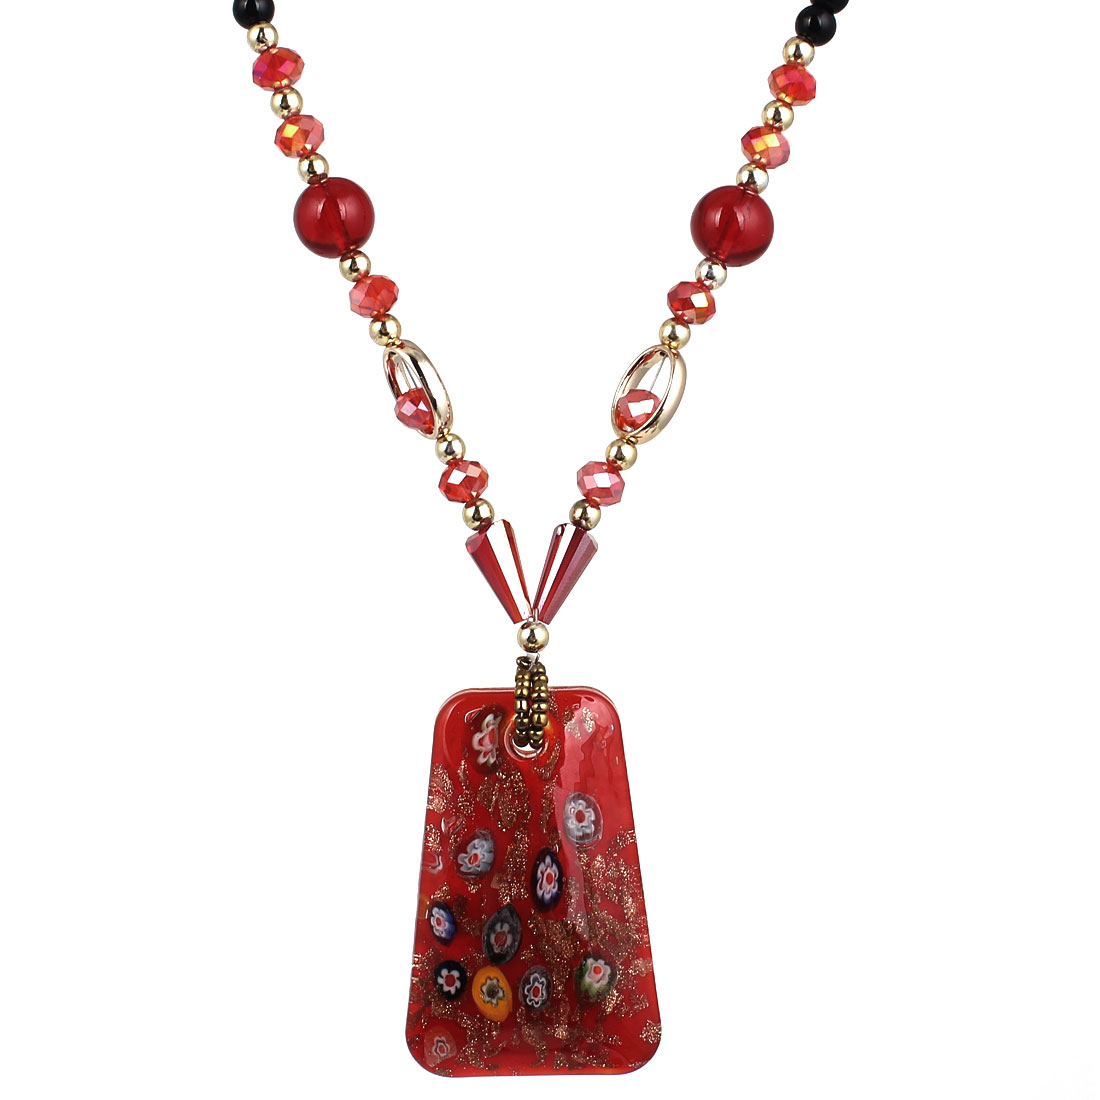 Black Red Plastic Beads Neck String Glass Trapezoid Pendant Necklace for Lady